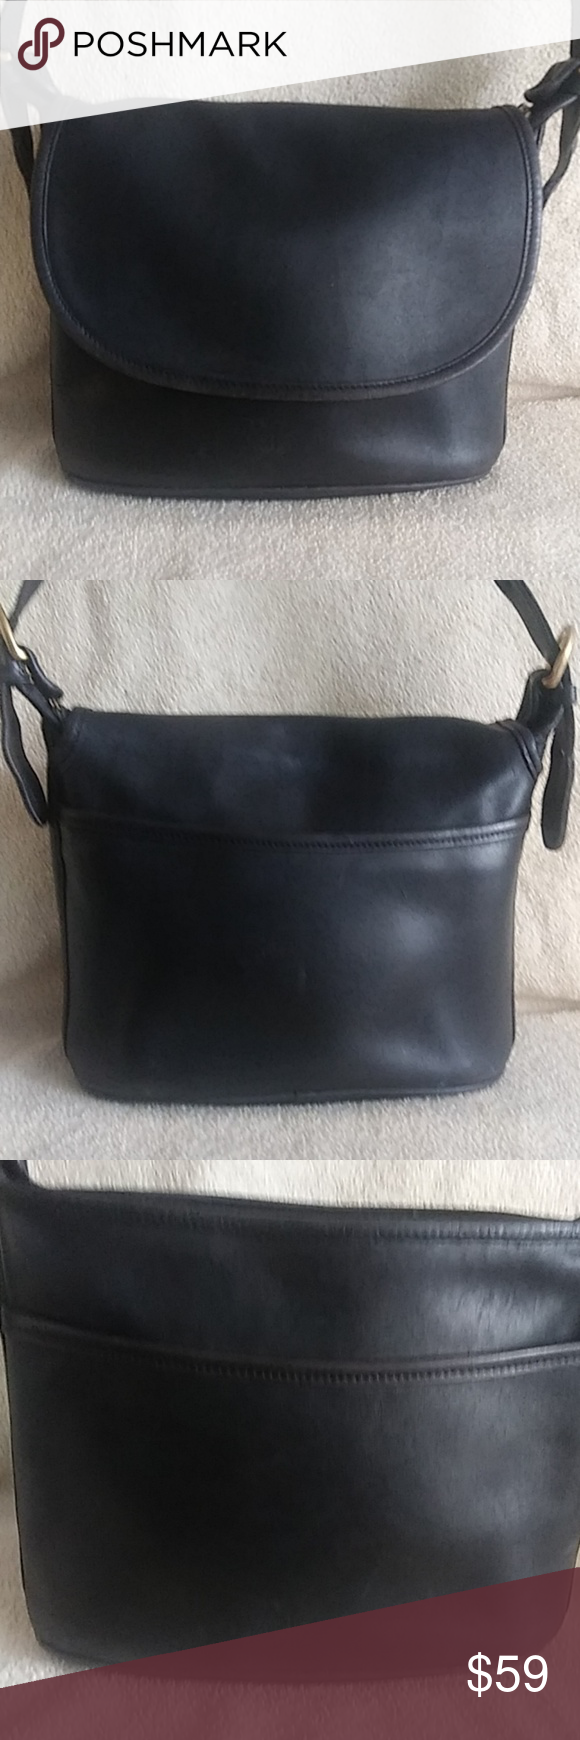 COACH vintage bag Great leather vintage coach bag use in great condition  made in UNITED STATES OF AMERICA please see the pictures for description. a3c1a5ca4a